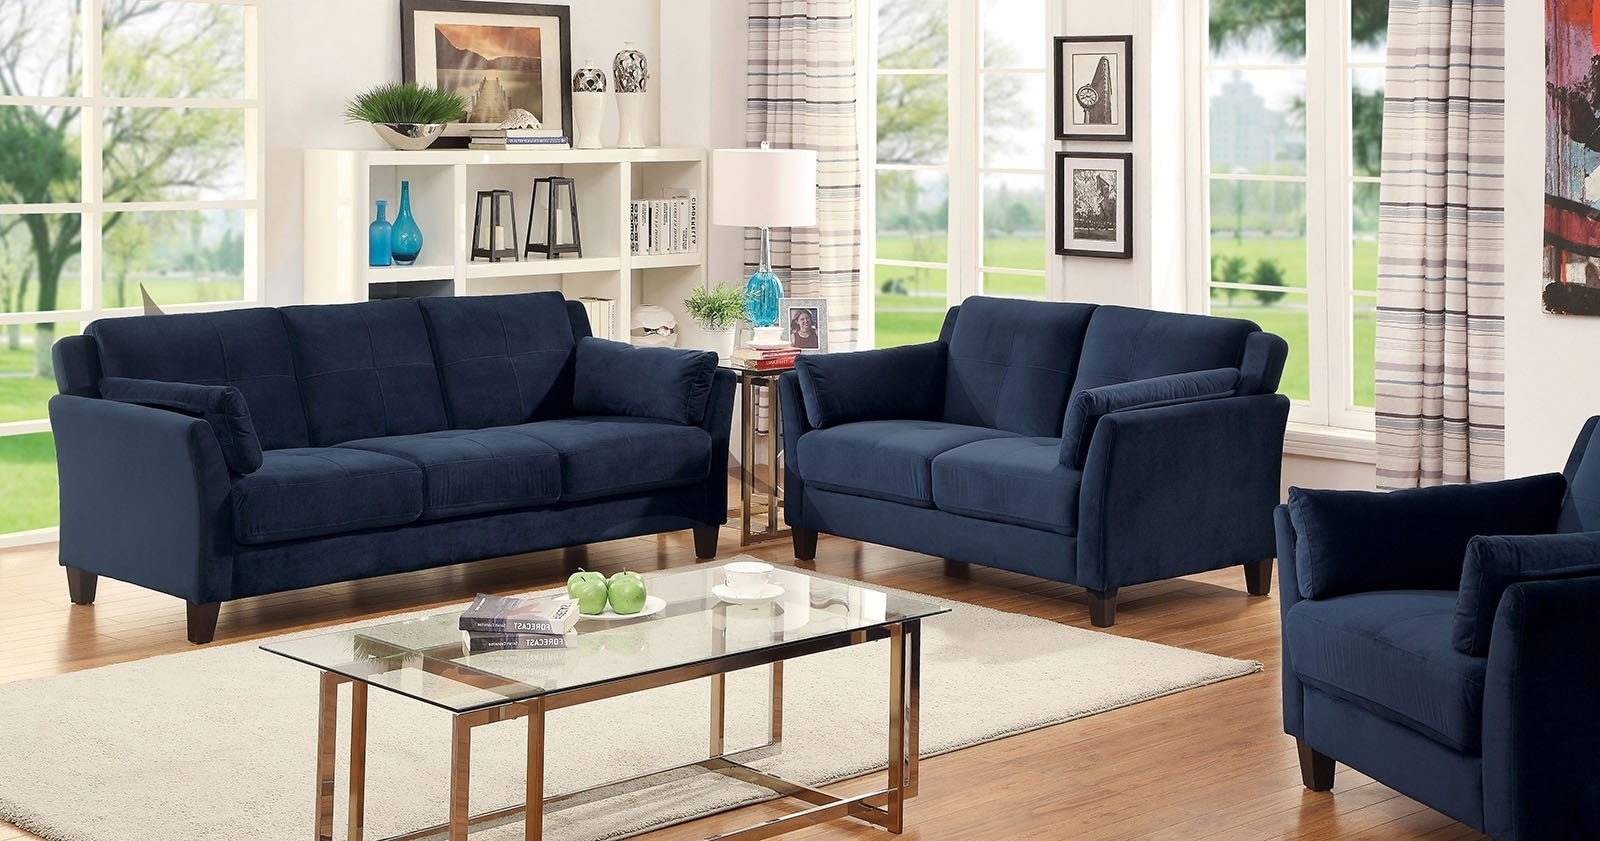 Sale 249494 Royal Home Sofa Set Riva Dark Blue 3Pc Sofa Awesome For Best And Newest Dark Blue Sofas (View 14 of 20)